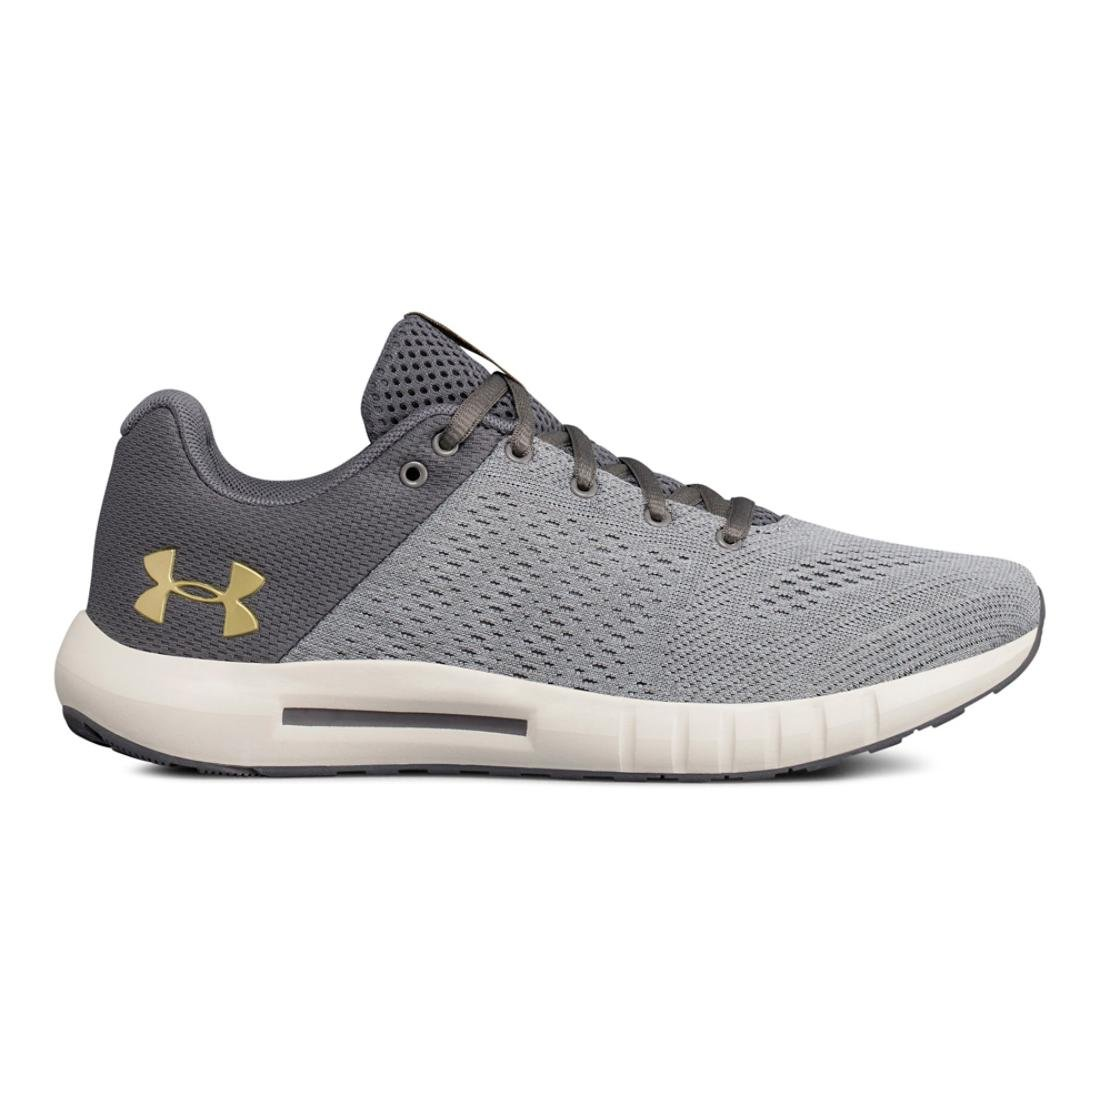 Under Armour Women's Micro G Pursuit Sneaker B075MQSVF8 6 B(M) US|Graphite/Overcast Gray/Metallic Gold